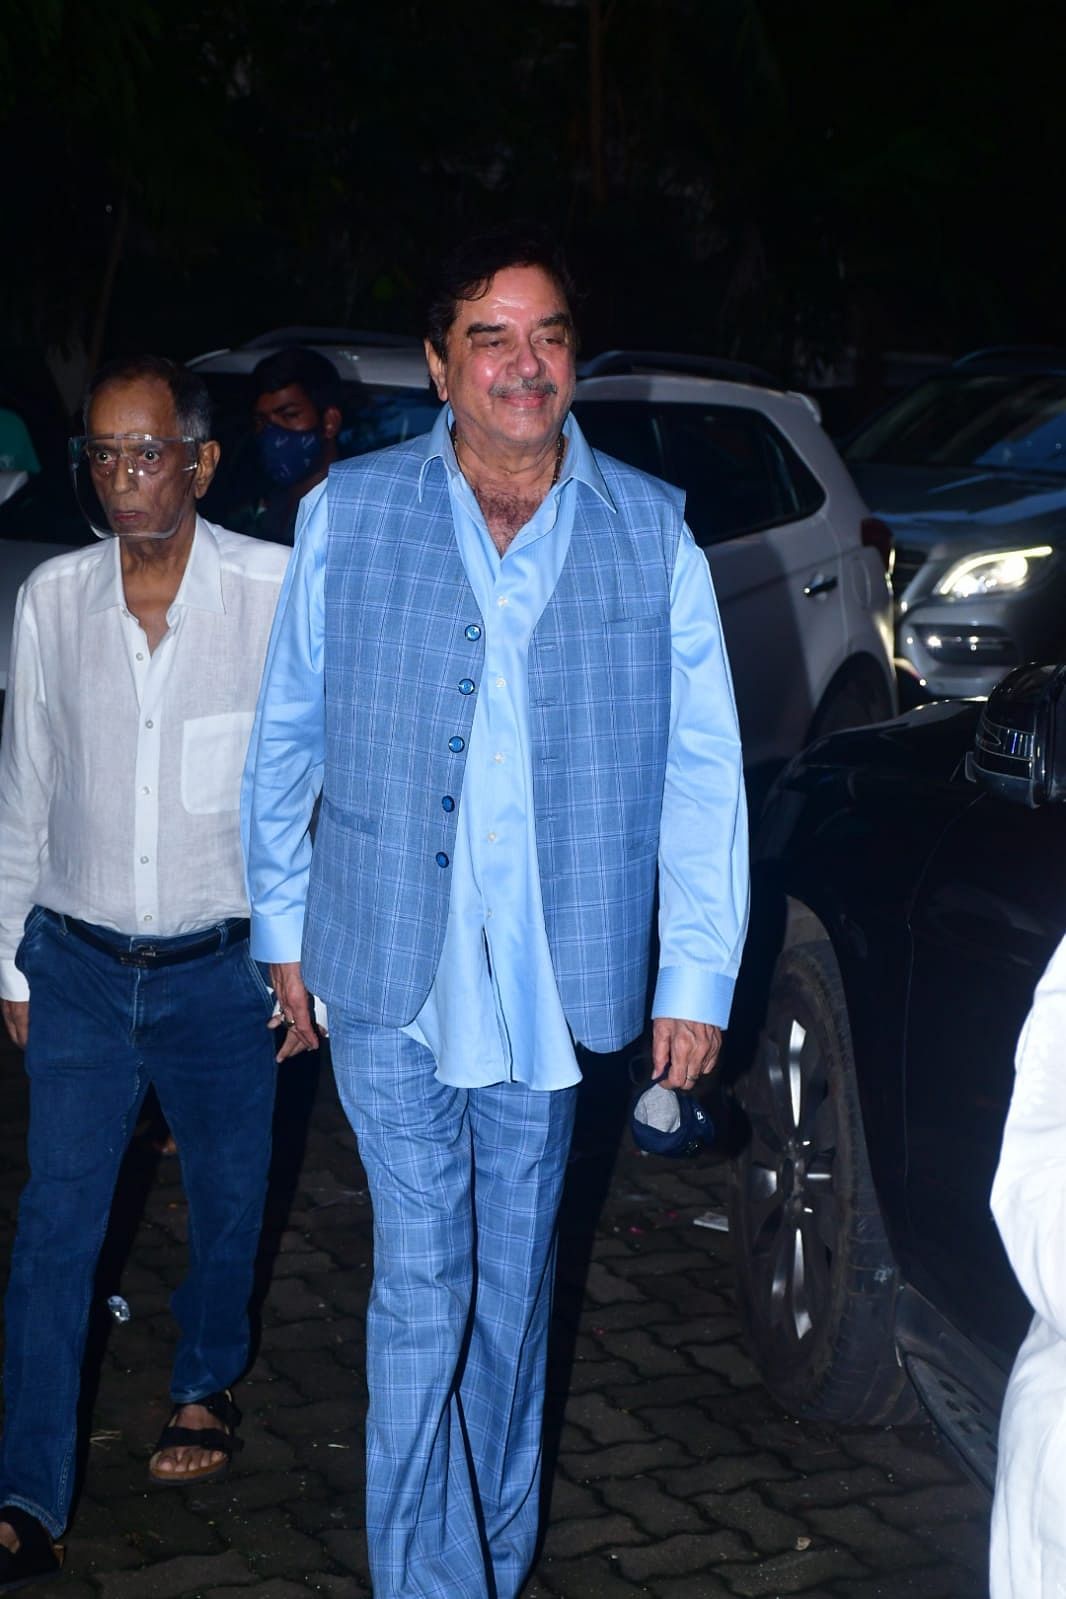 In Pics: Shatrughan Sinha, Karisma Kapoor and others arrive at Chunky Panday's residence after his mother's demise